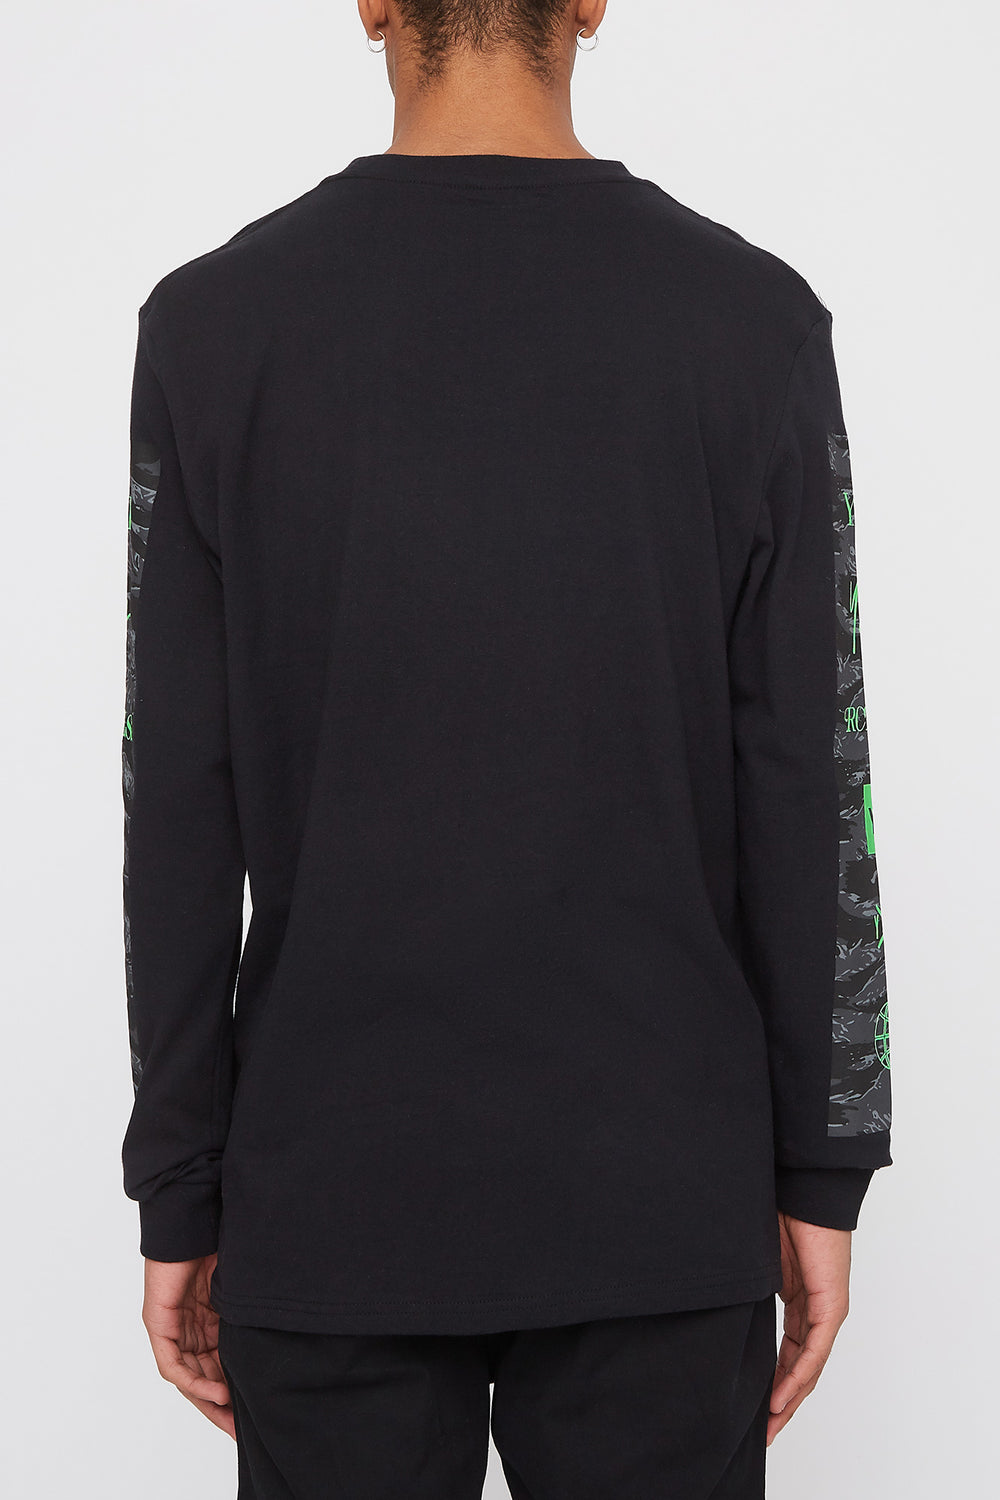 Chandail À Manches Longues Logo Camouflage Young & Reckless Homme Noir